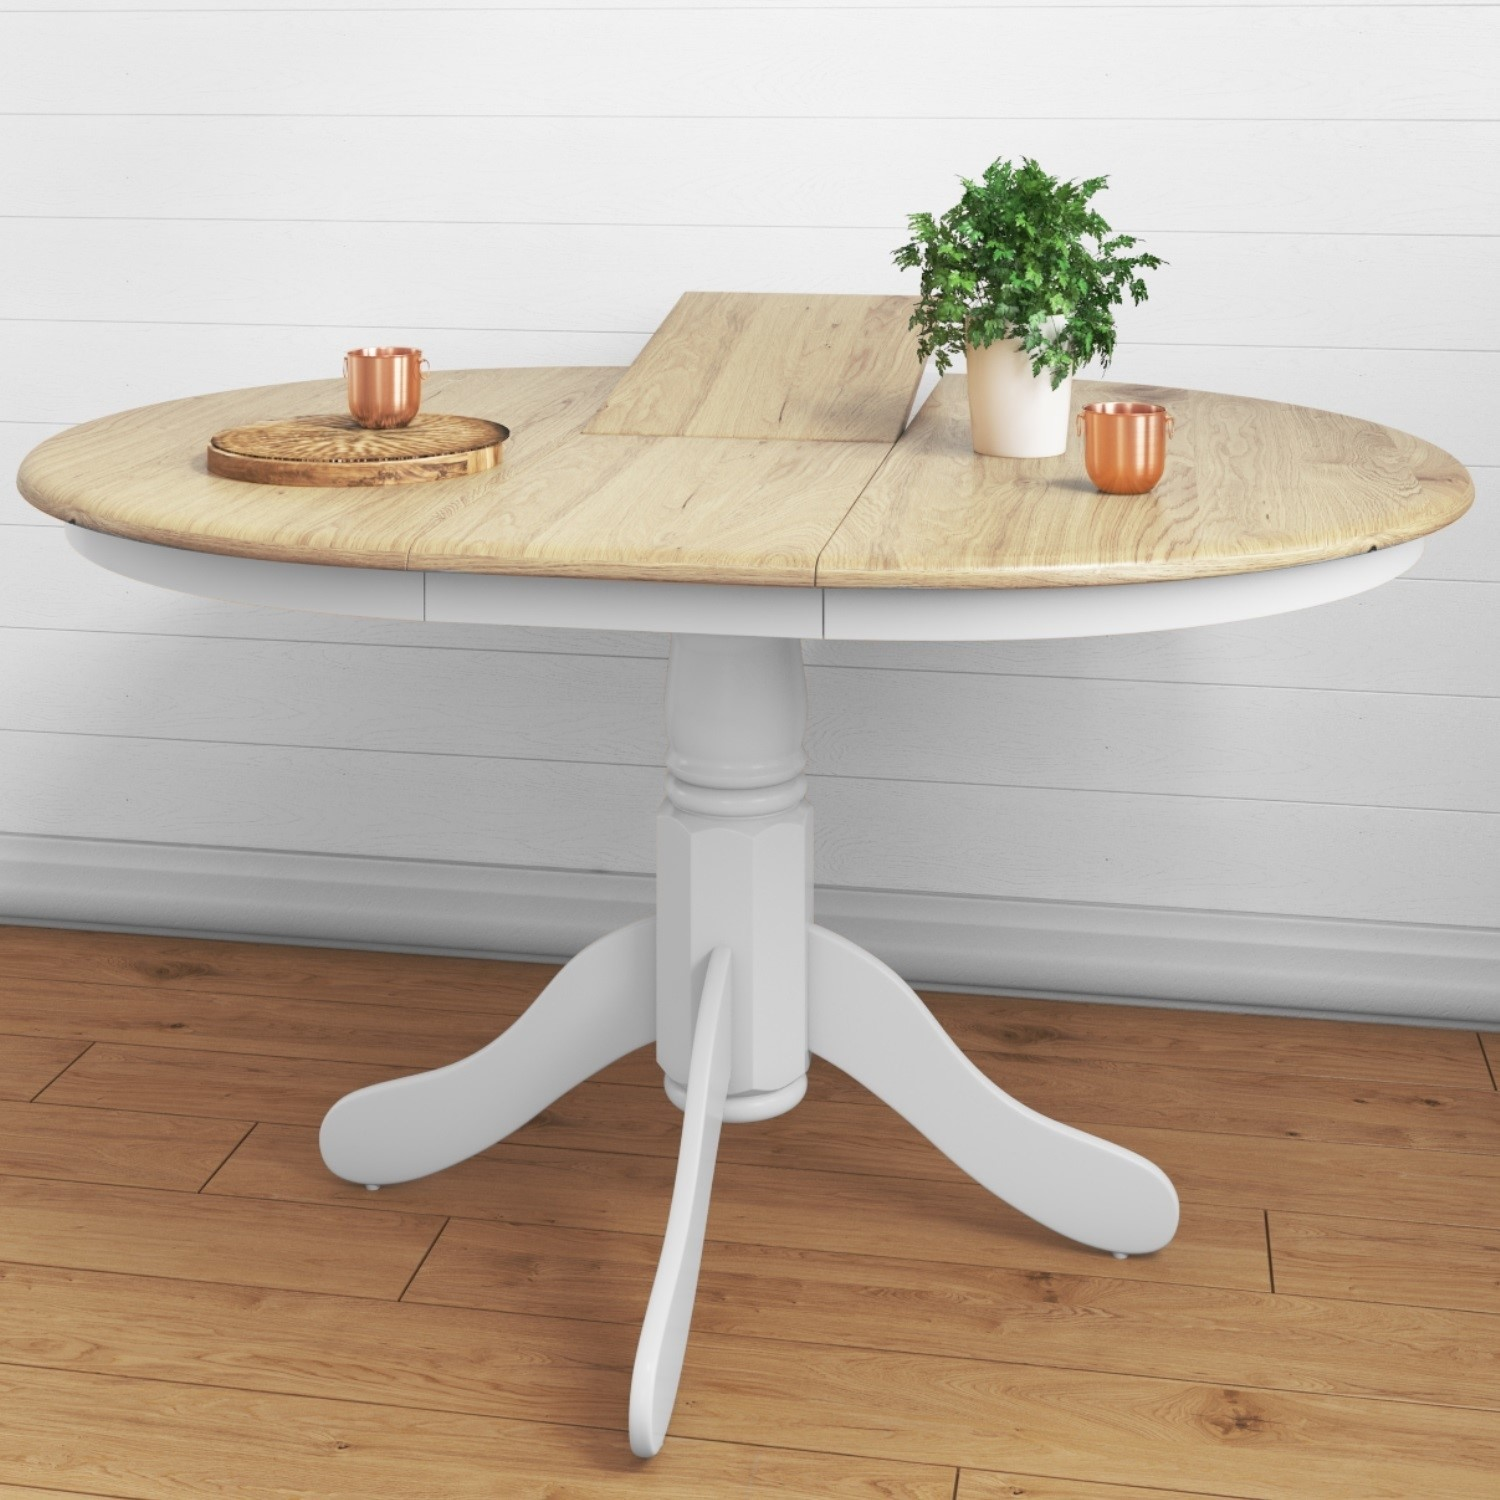 Picture of: Round Extendable Dining Table In White Oak Effect Seats 6 Rhode Island Furniture123